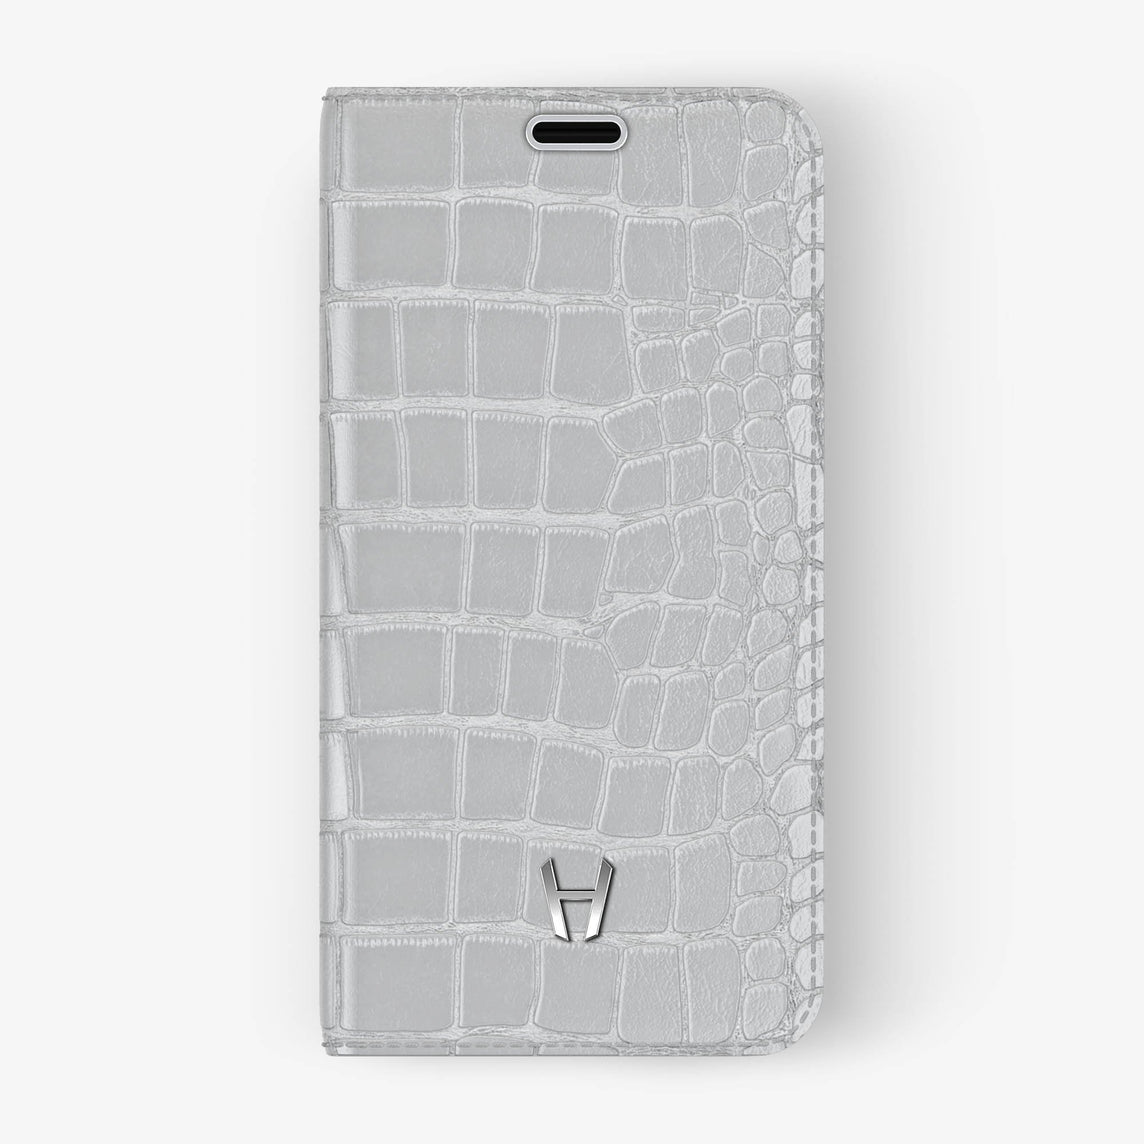 Alligator Folio Case iPhone X/Xs | White - Stainless Steel without-personalization